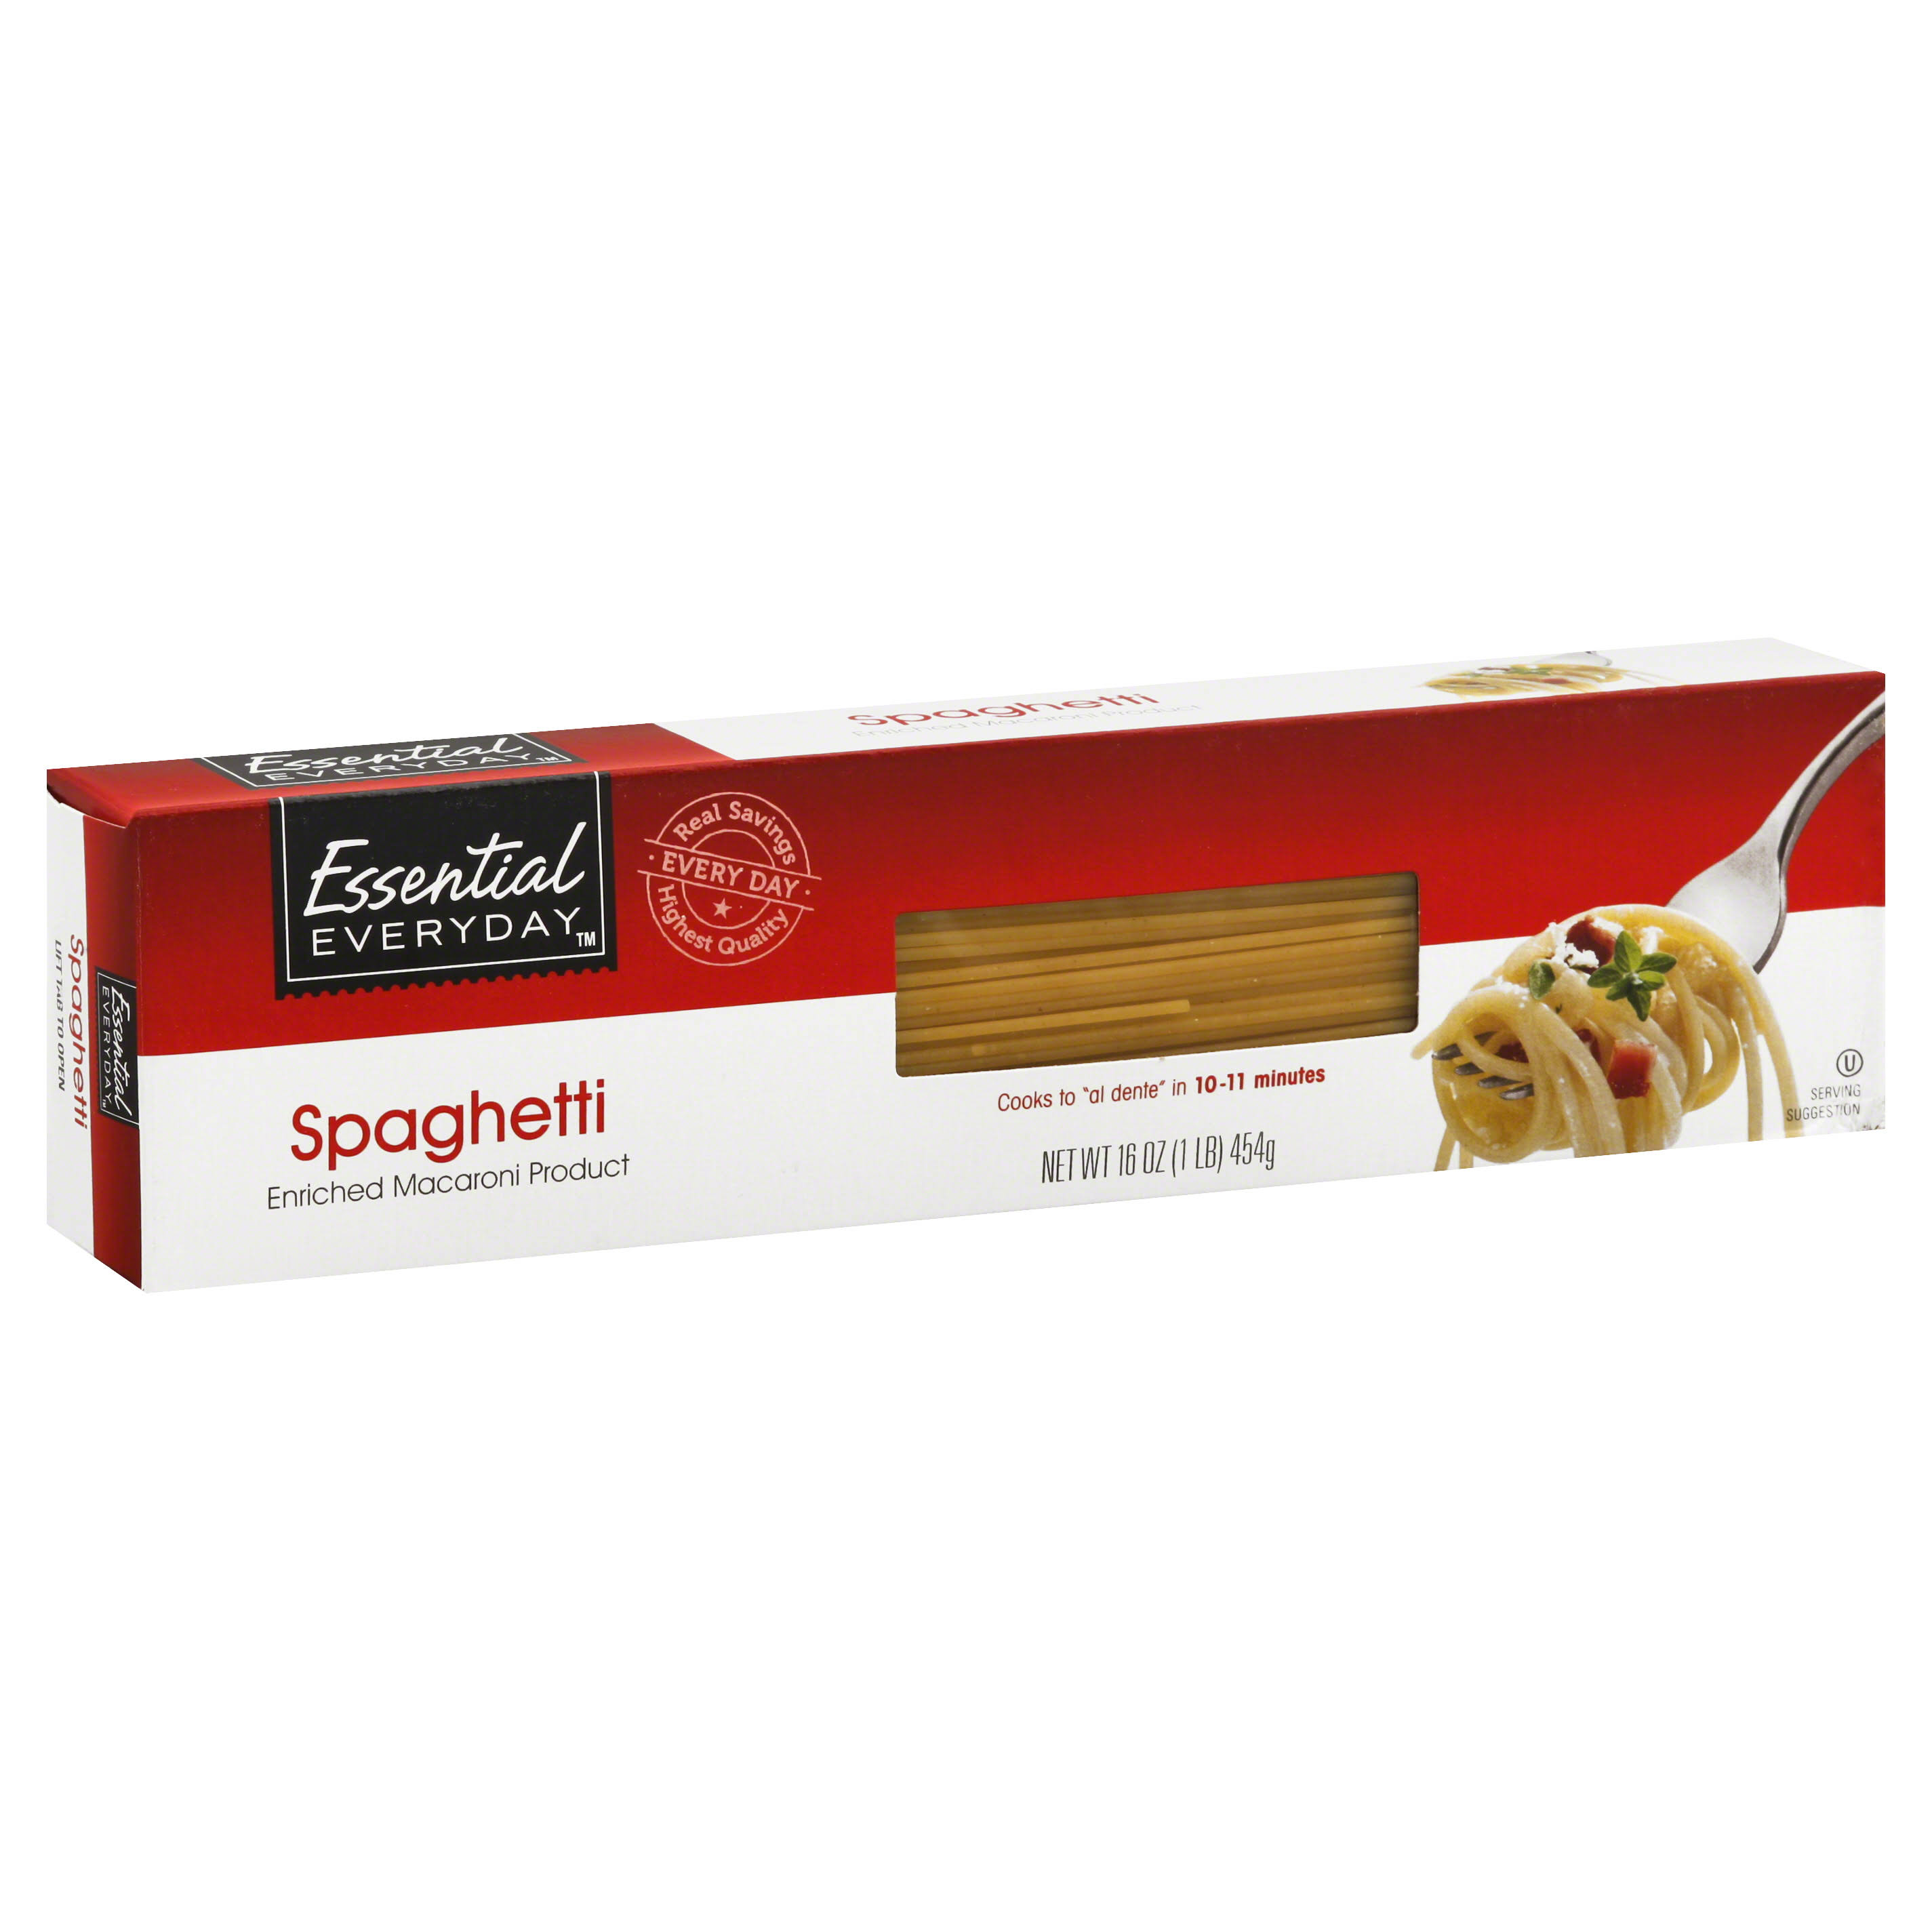 Essential Everyday Spaghetti - 16 oz